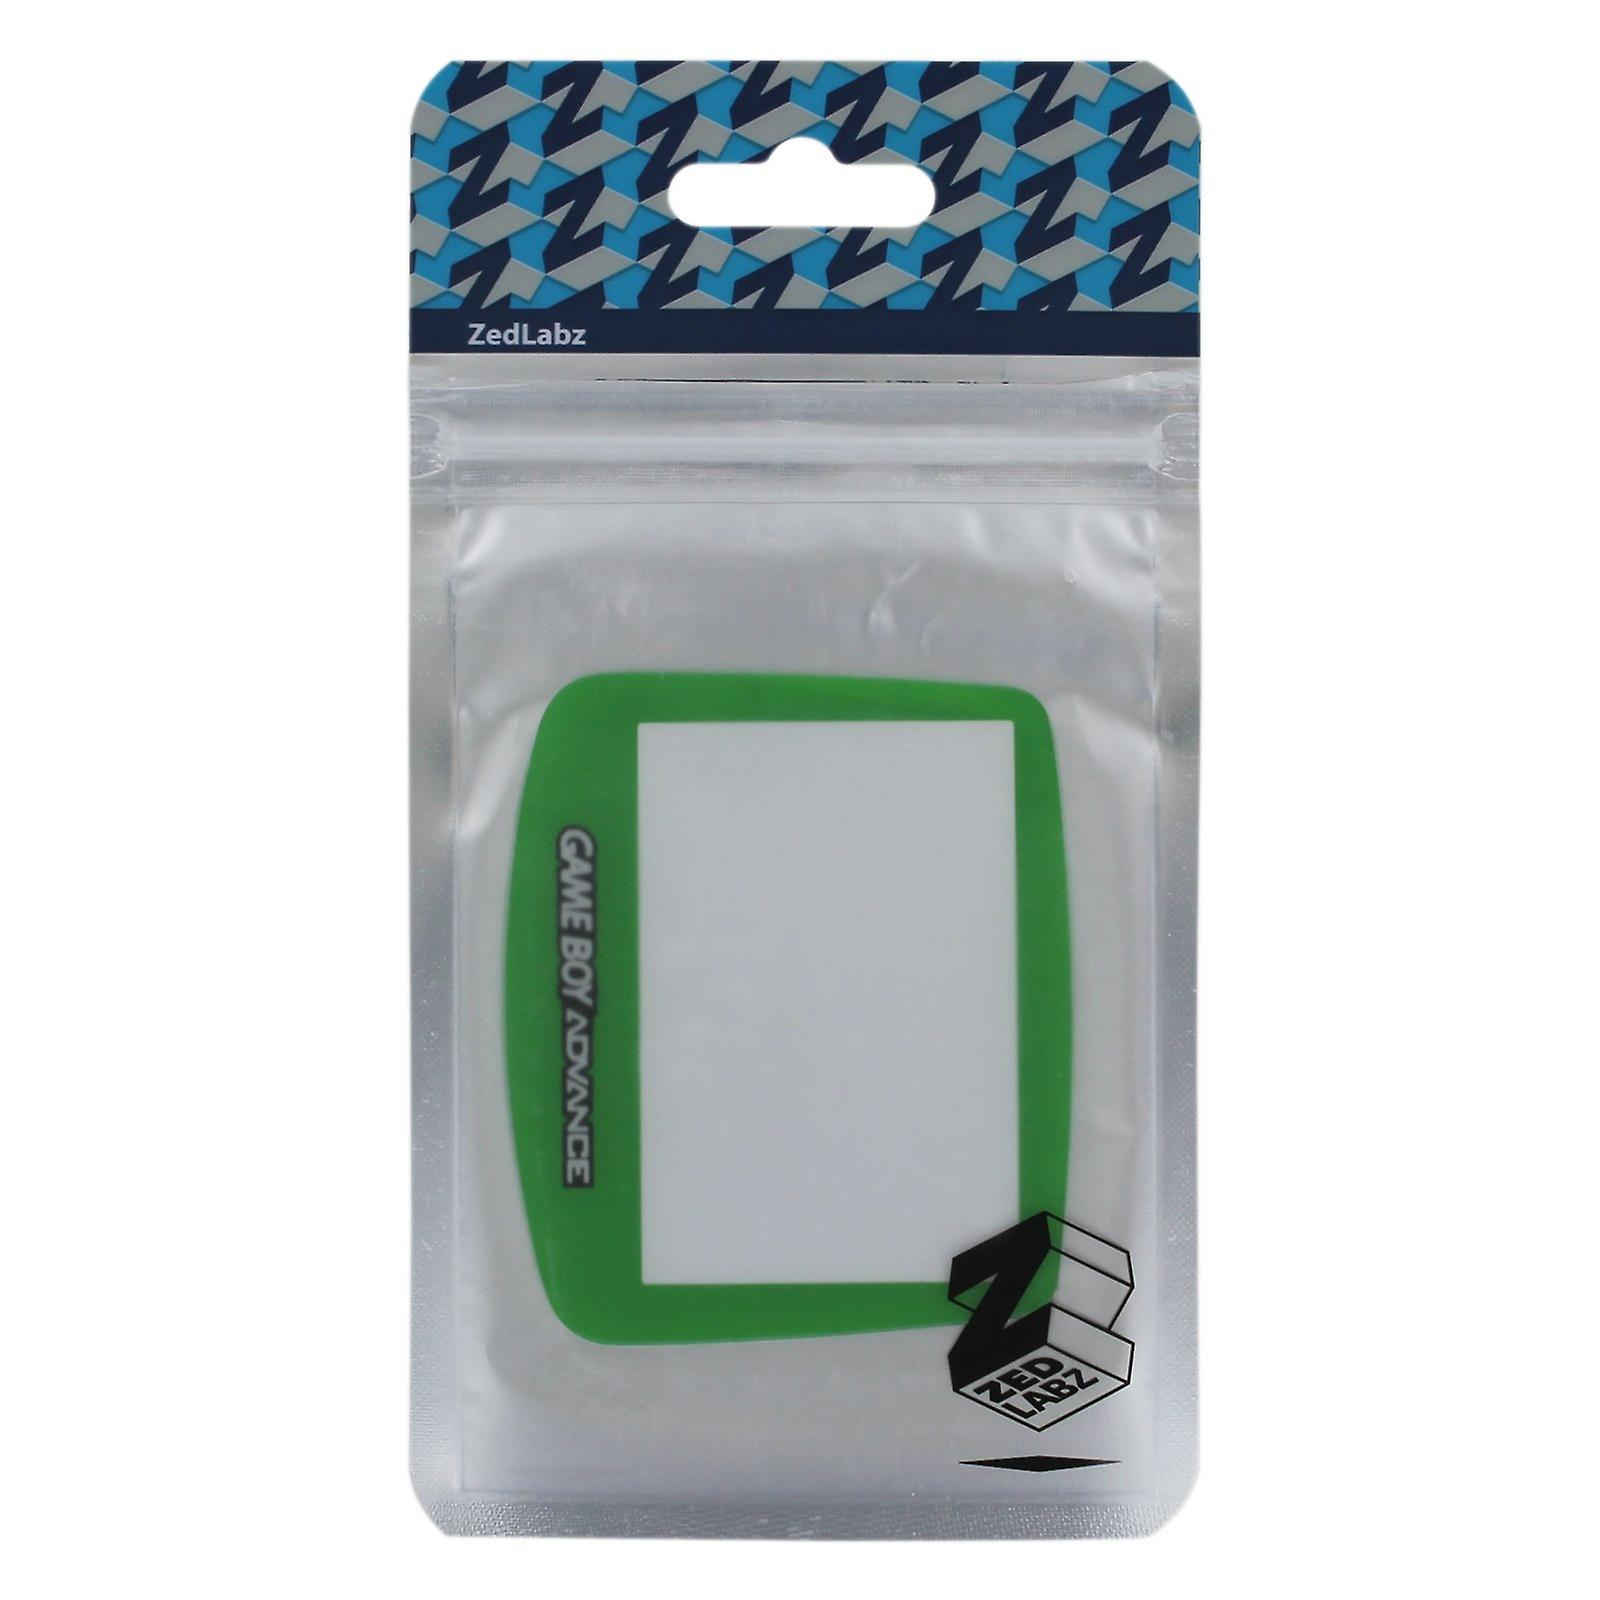 Replacement screen lens plastic cover for nintendo game boy advance - green